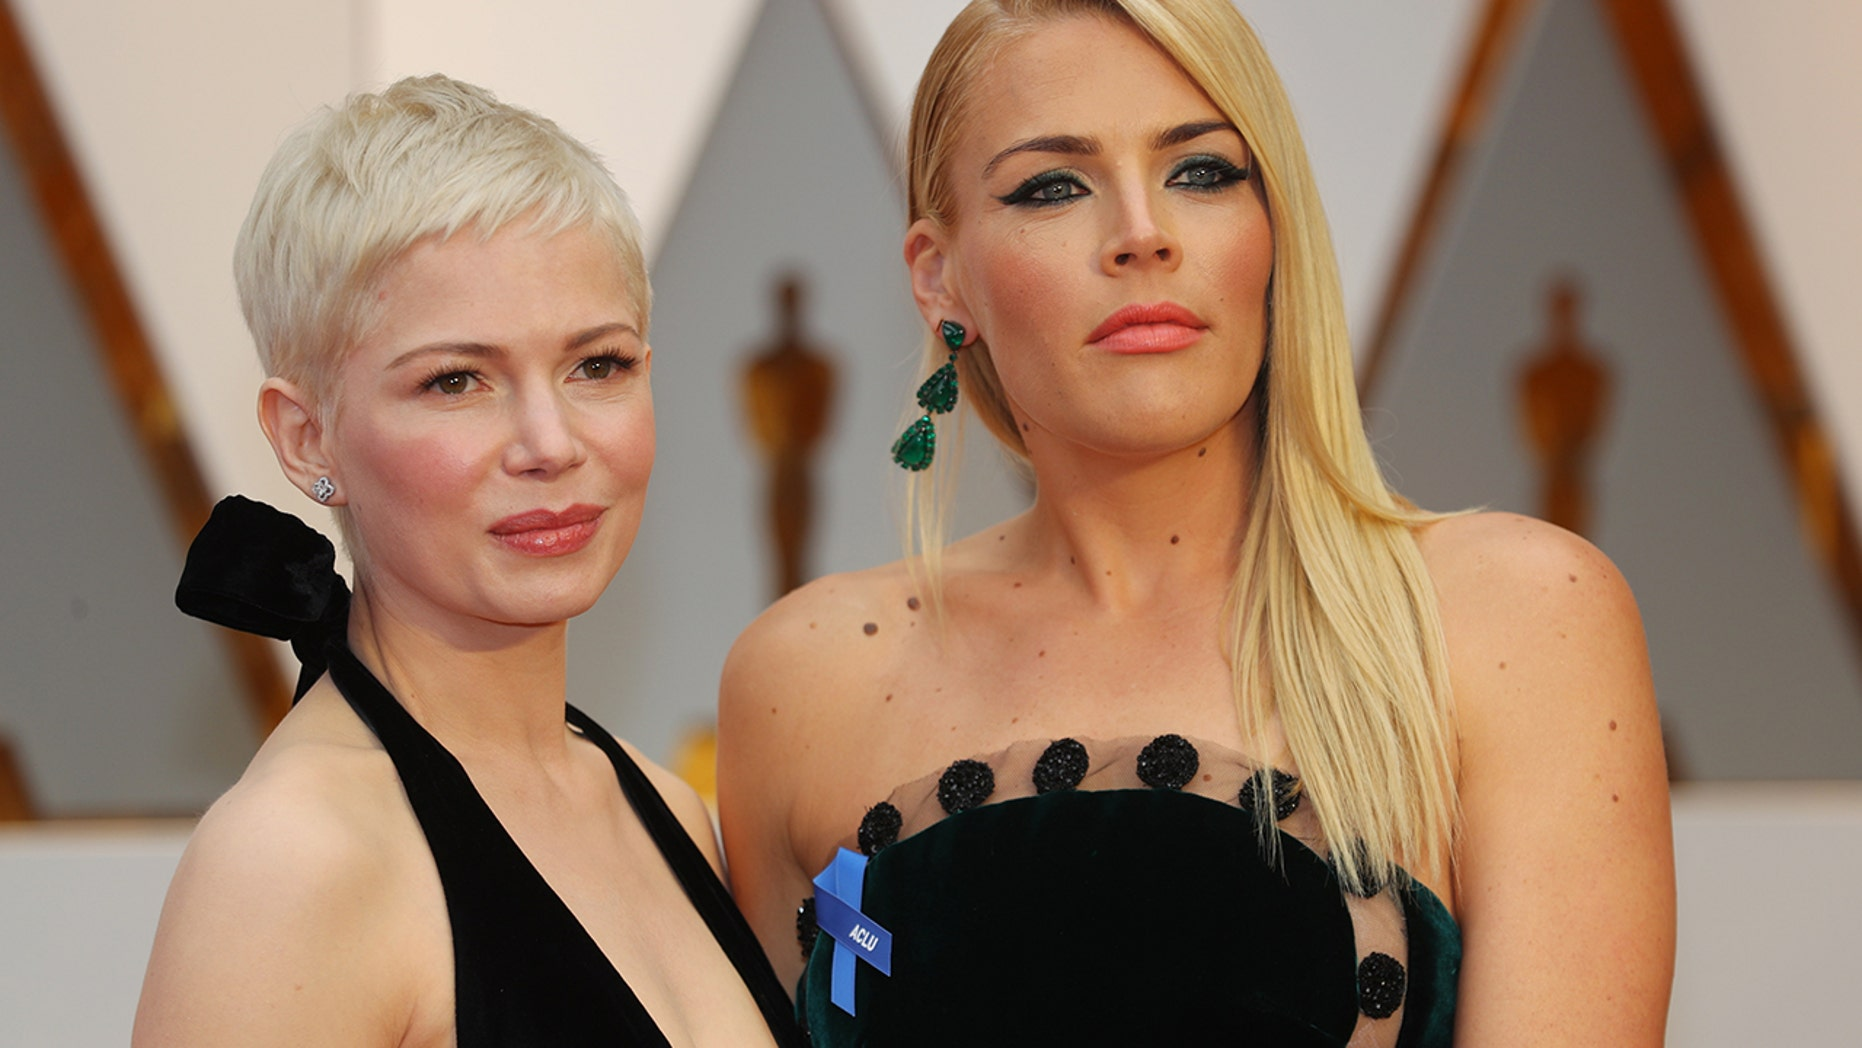 Michelle Williams (left) and Busy Philipps attend the 89th Academy Awards.